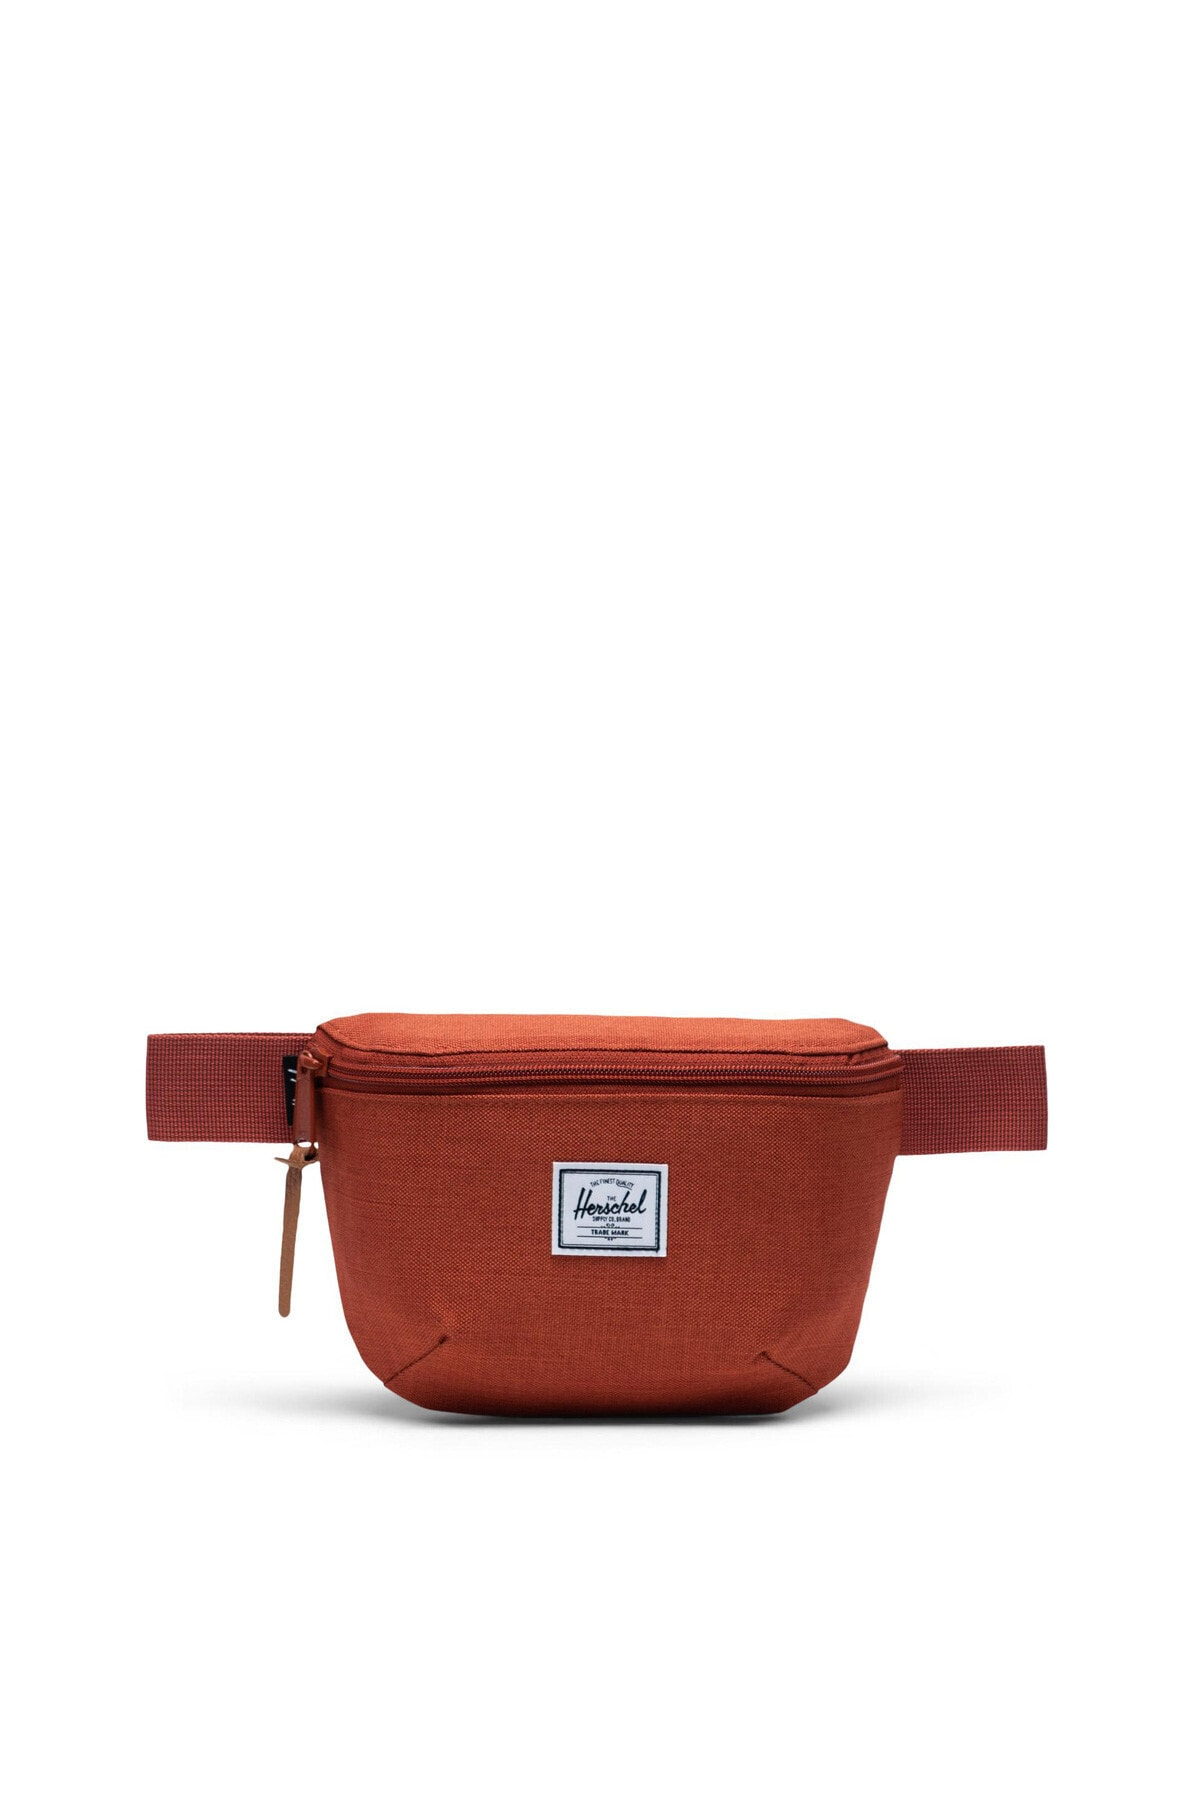 Herschel Supply Co. Herschel Fourteen Picante Crosshatch Bel Çantası 10514-03002-os 1